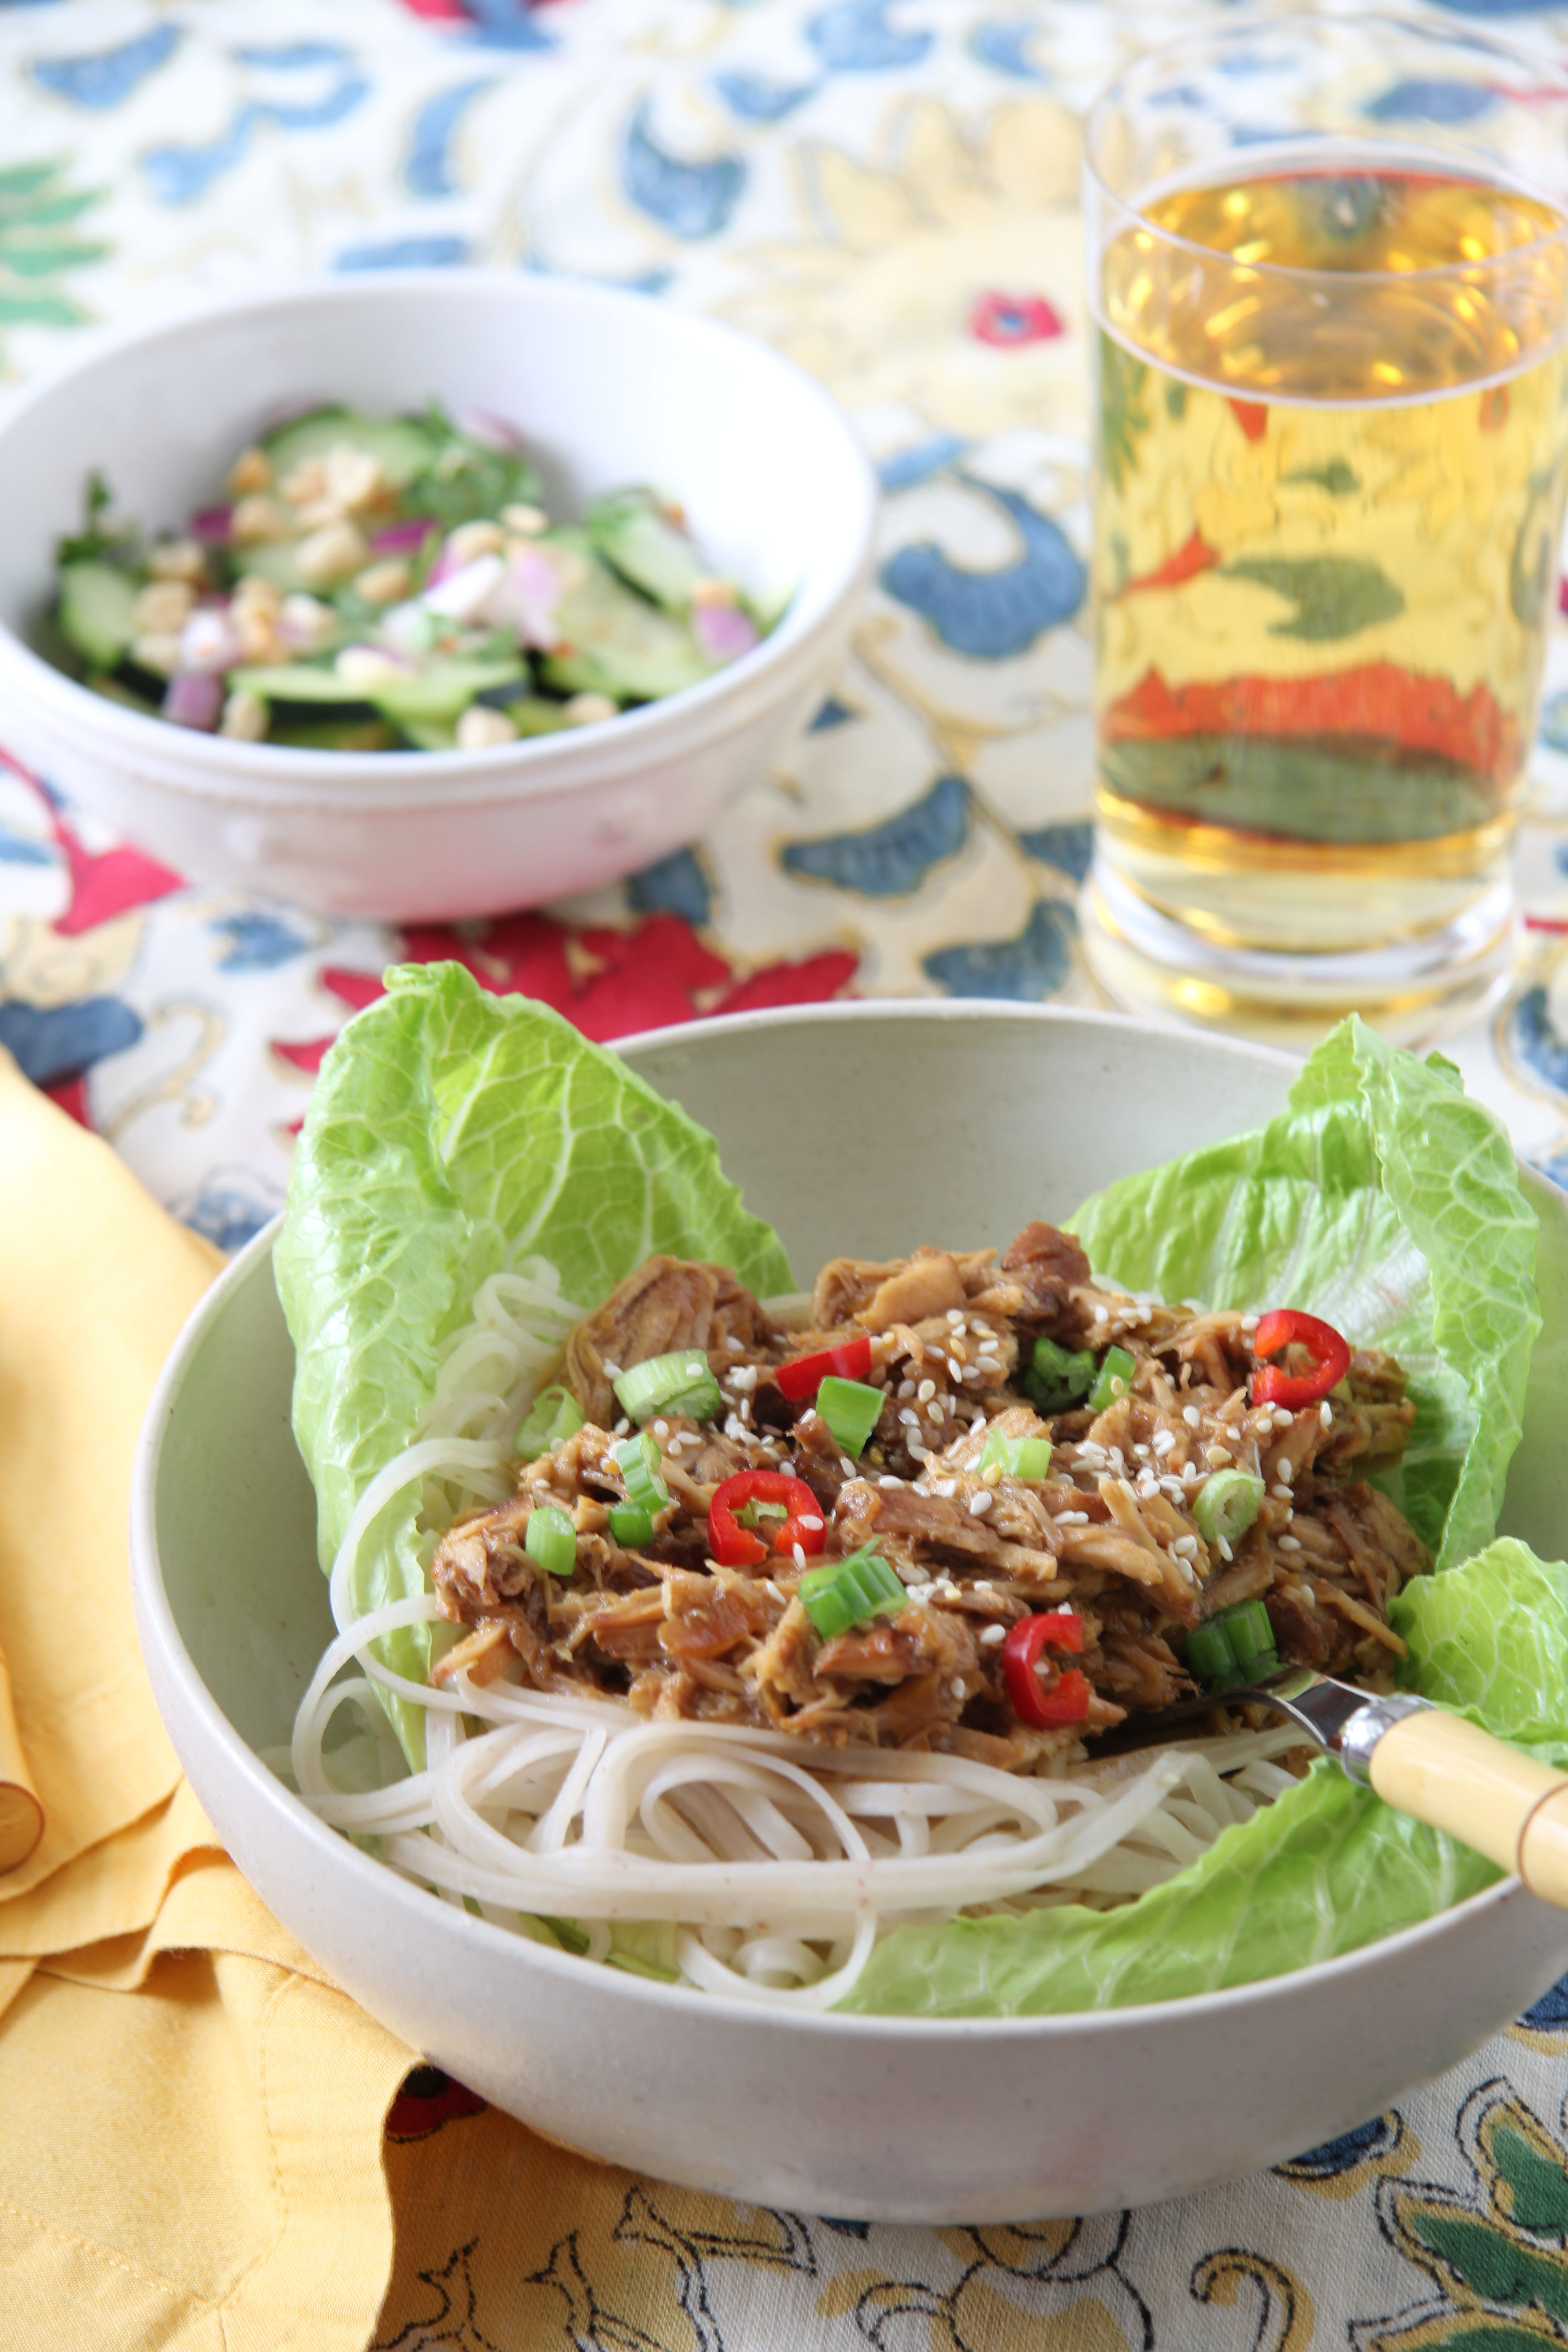 Looking for a new recipe, Ridgely Brode and her husband made Honey Sesame Pulled Pork Slow Cooker and Thai Cucumber Salad.